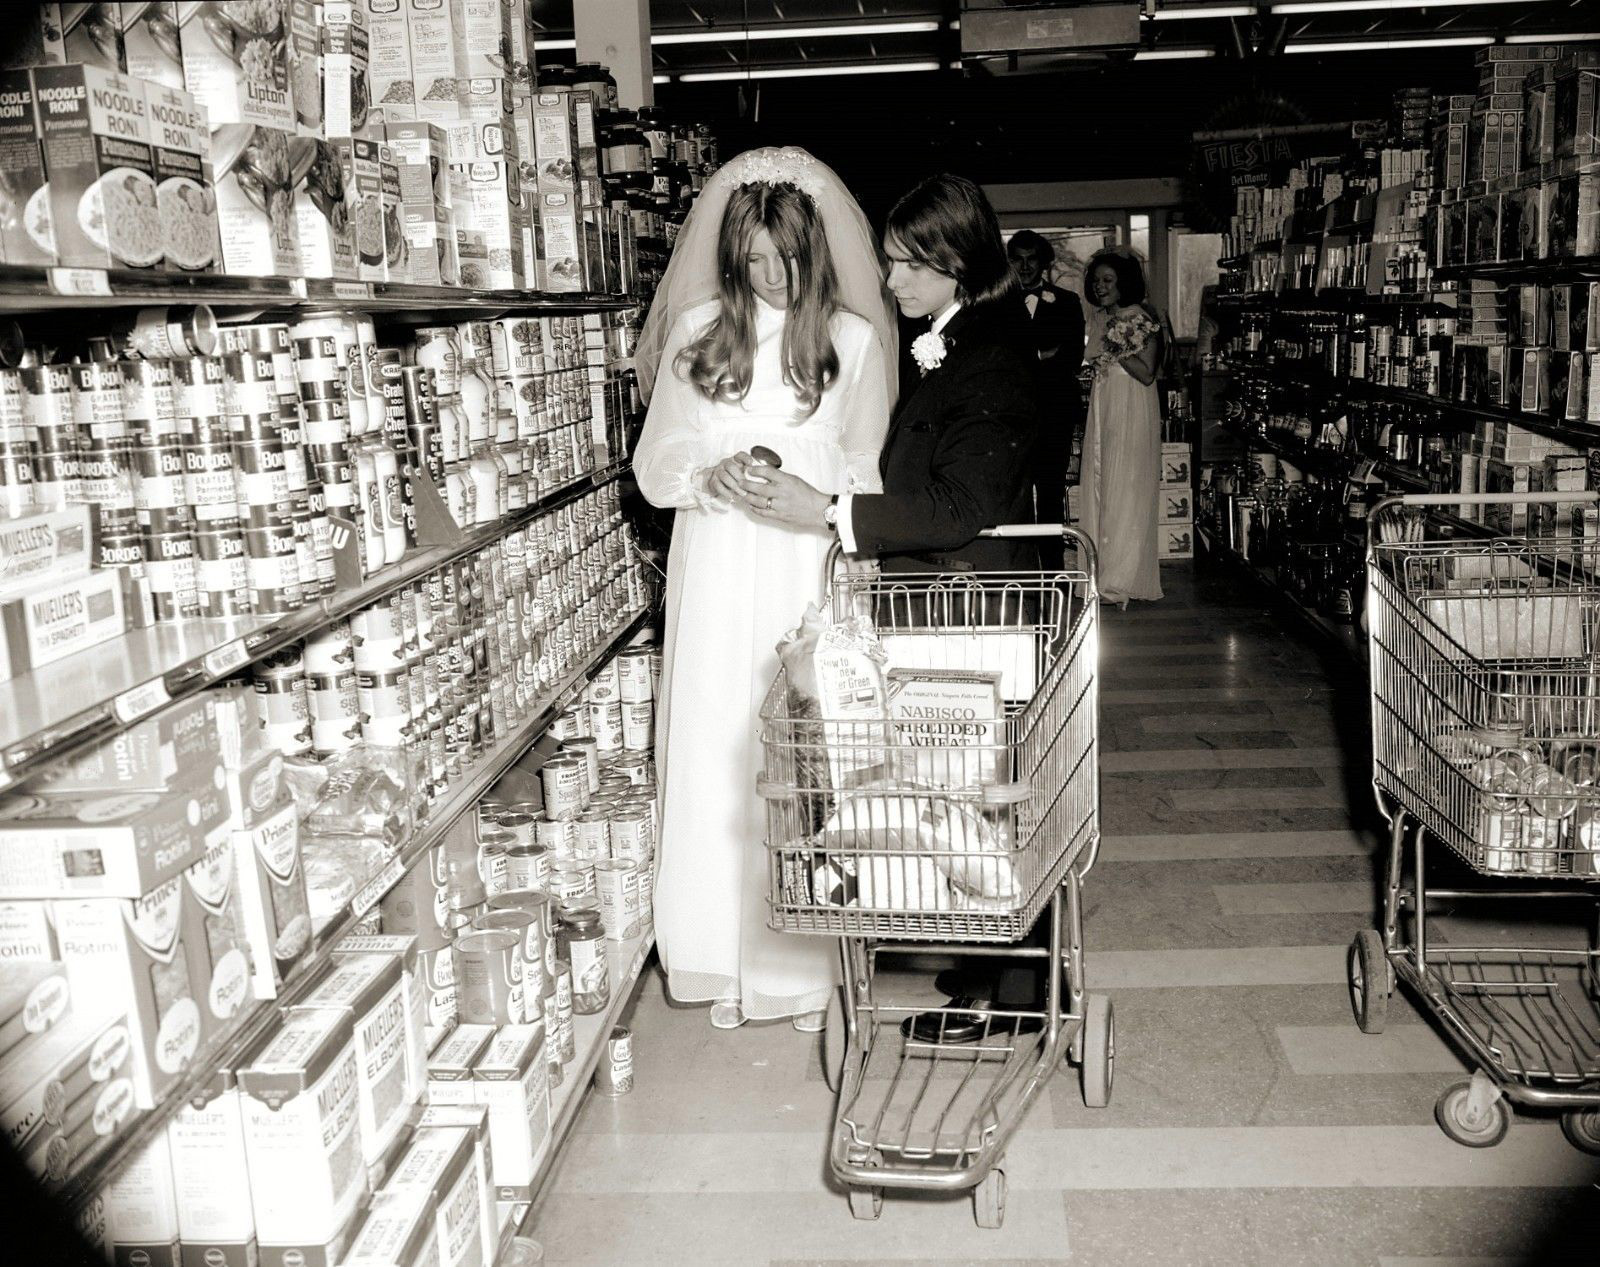 wedding-grocery-store.jpg